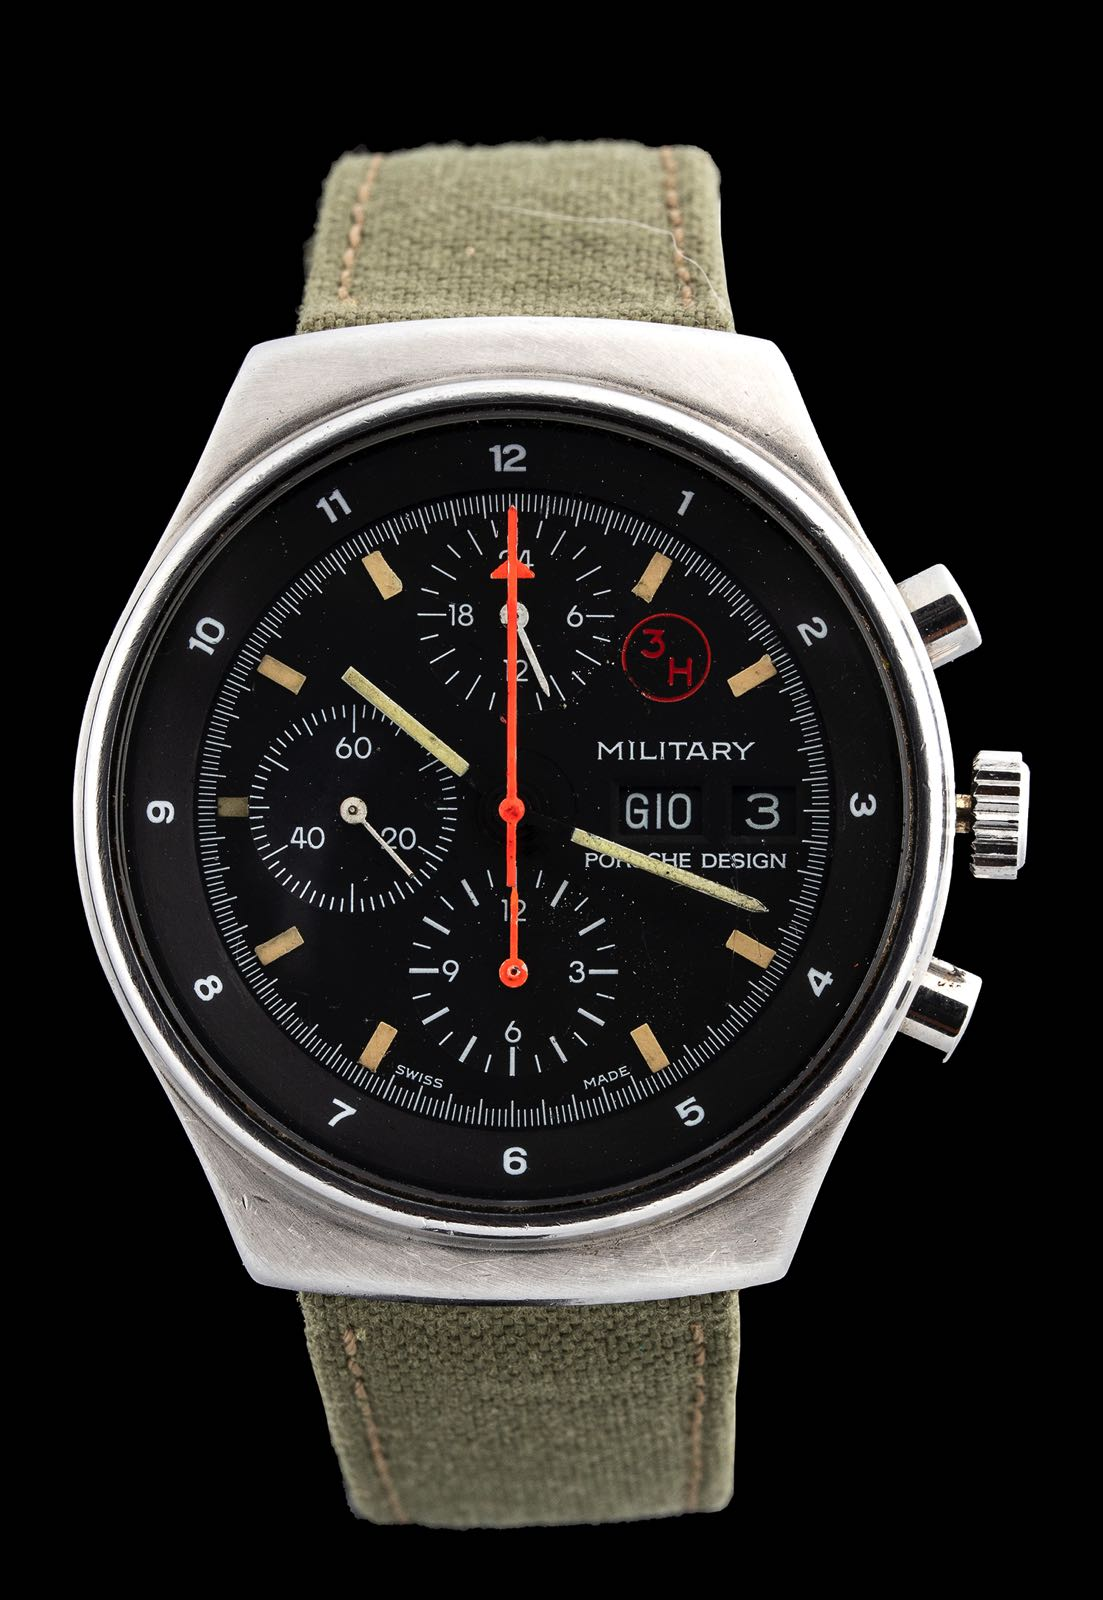 Porsche Design by Orfina Military assigned chronograph ref 7177 1980's